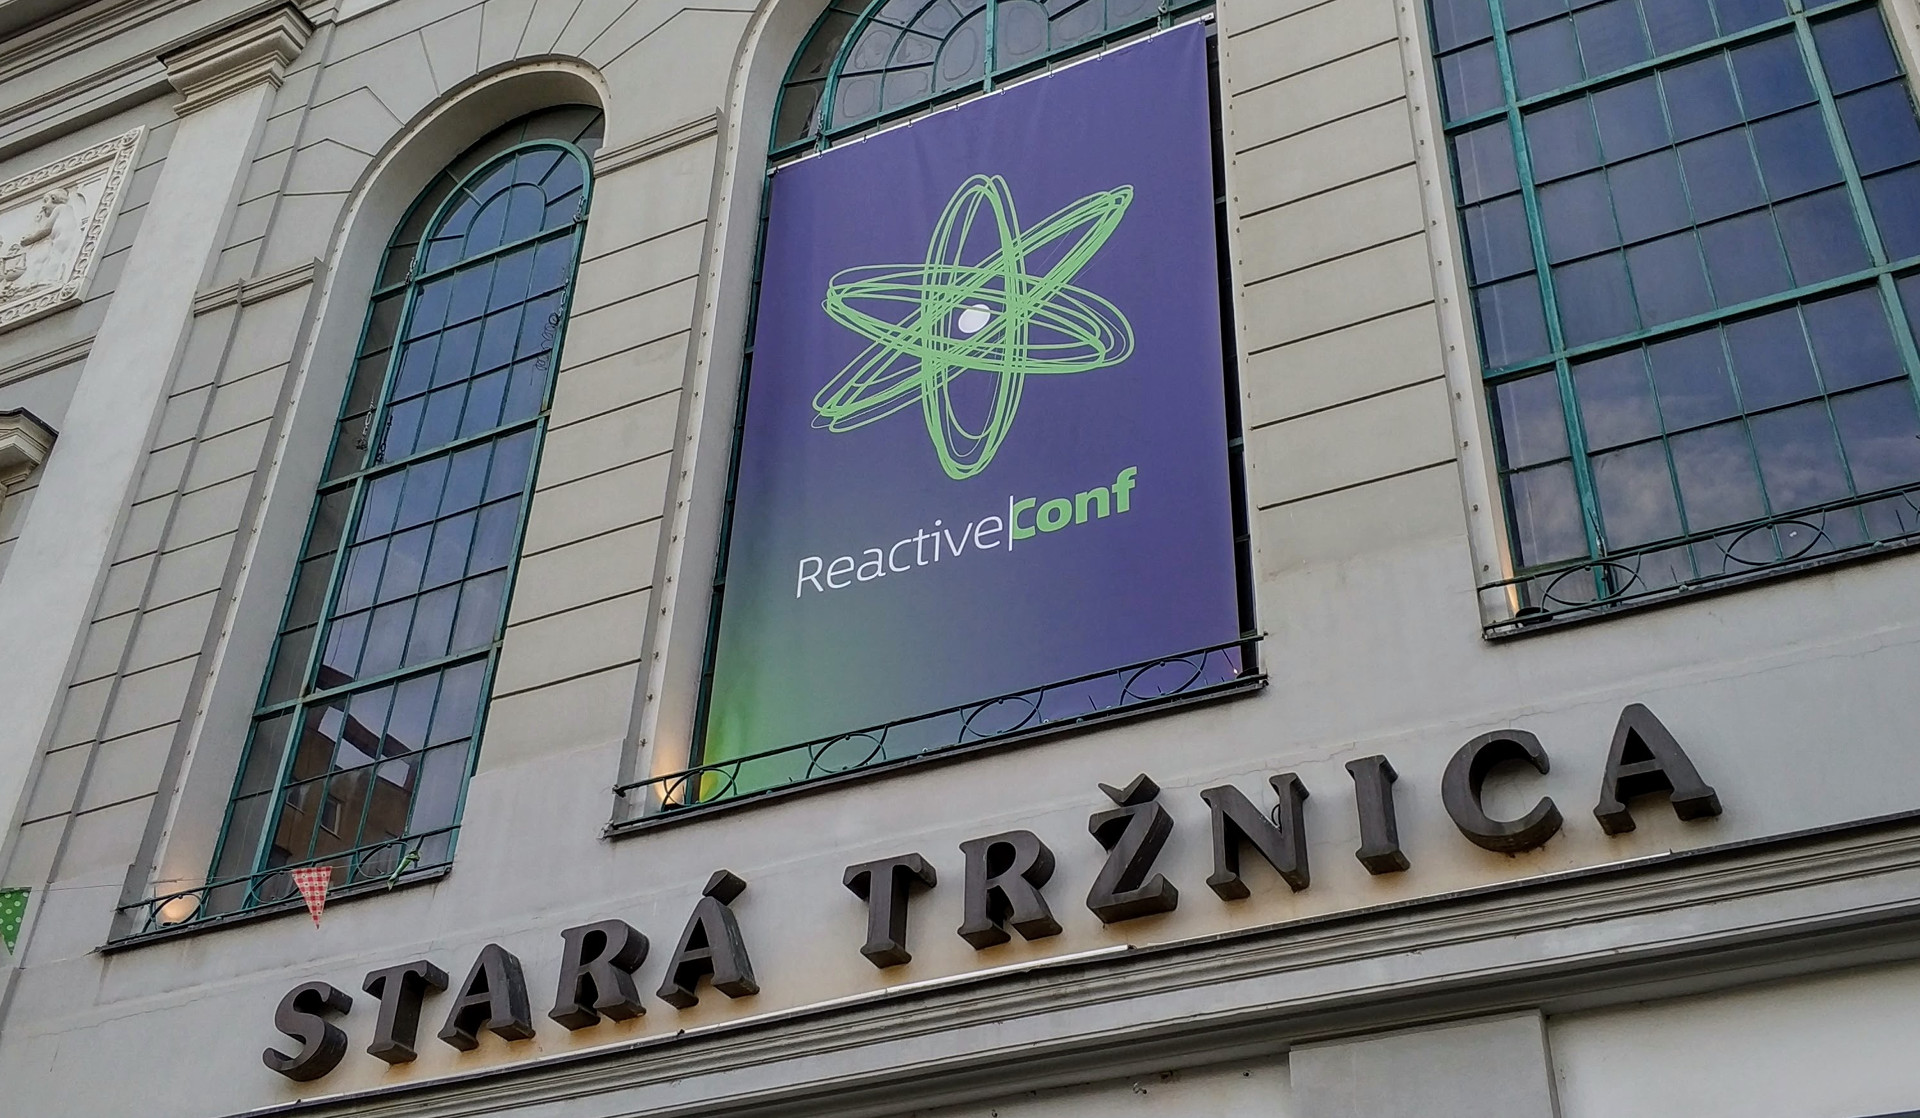 ReactiveConf 2017